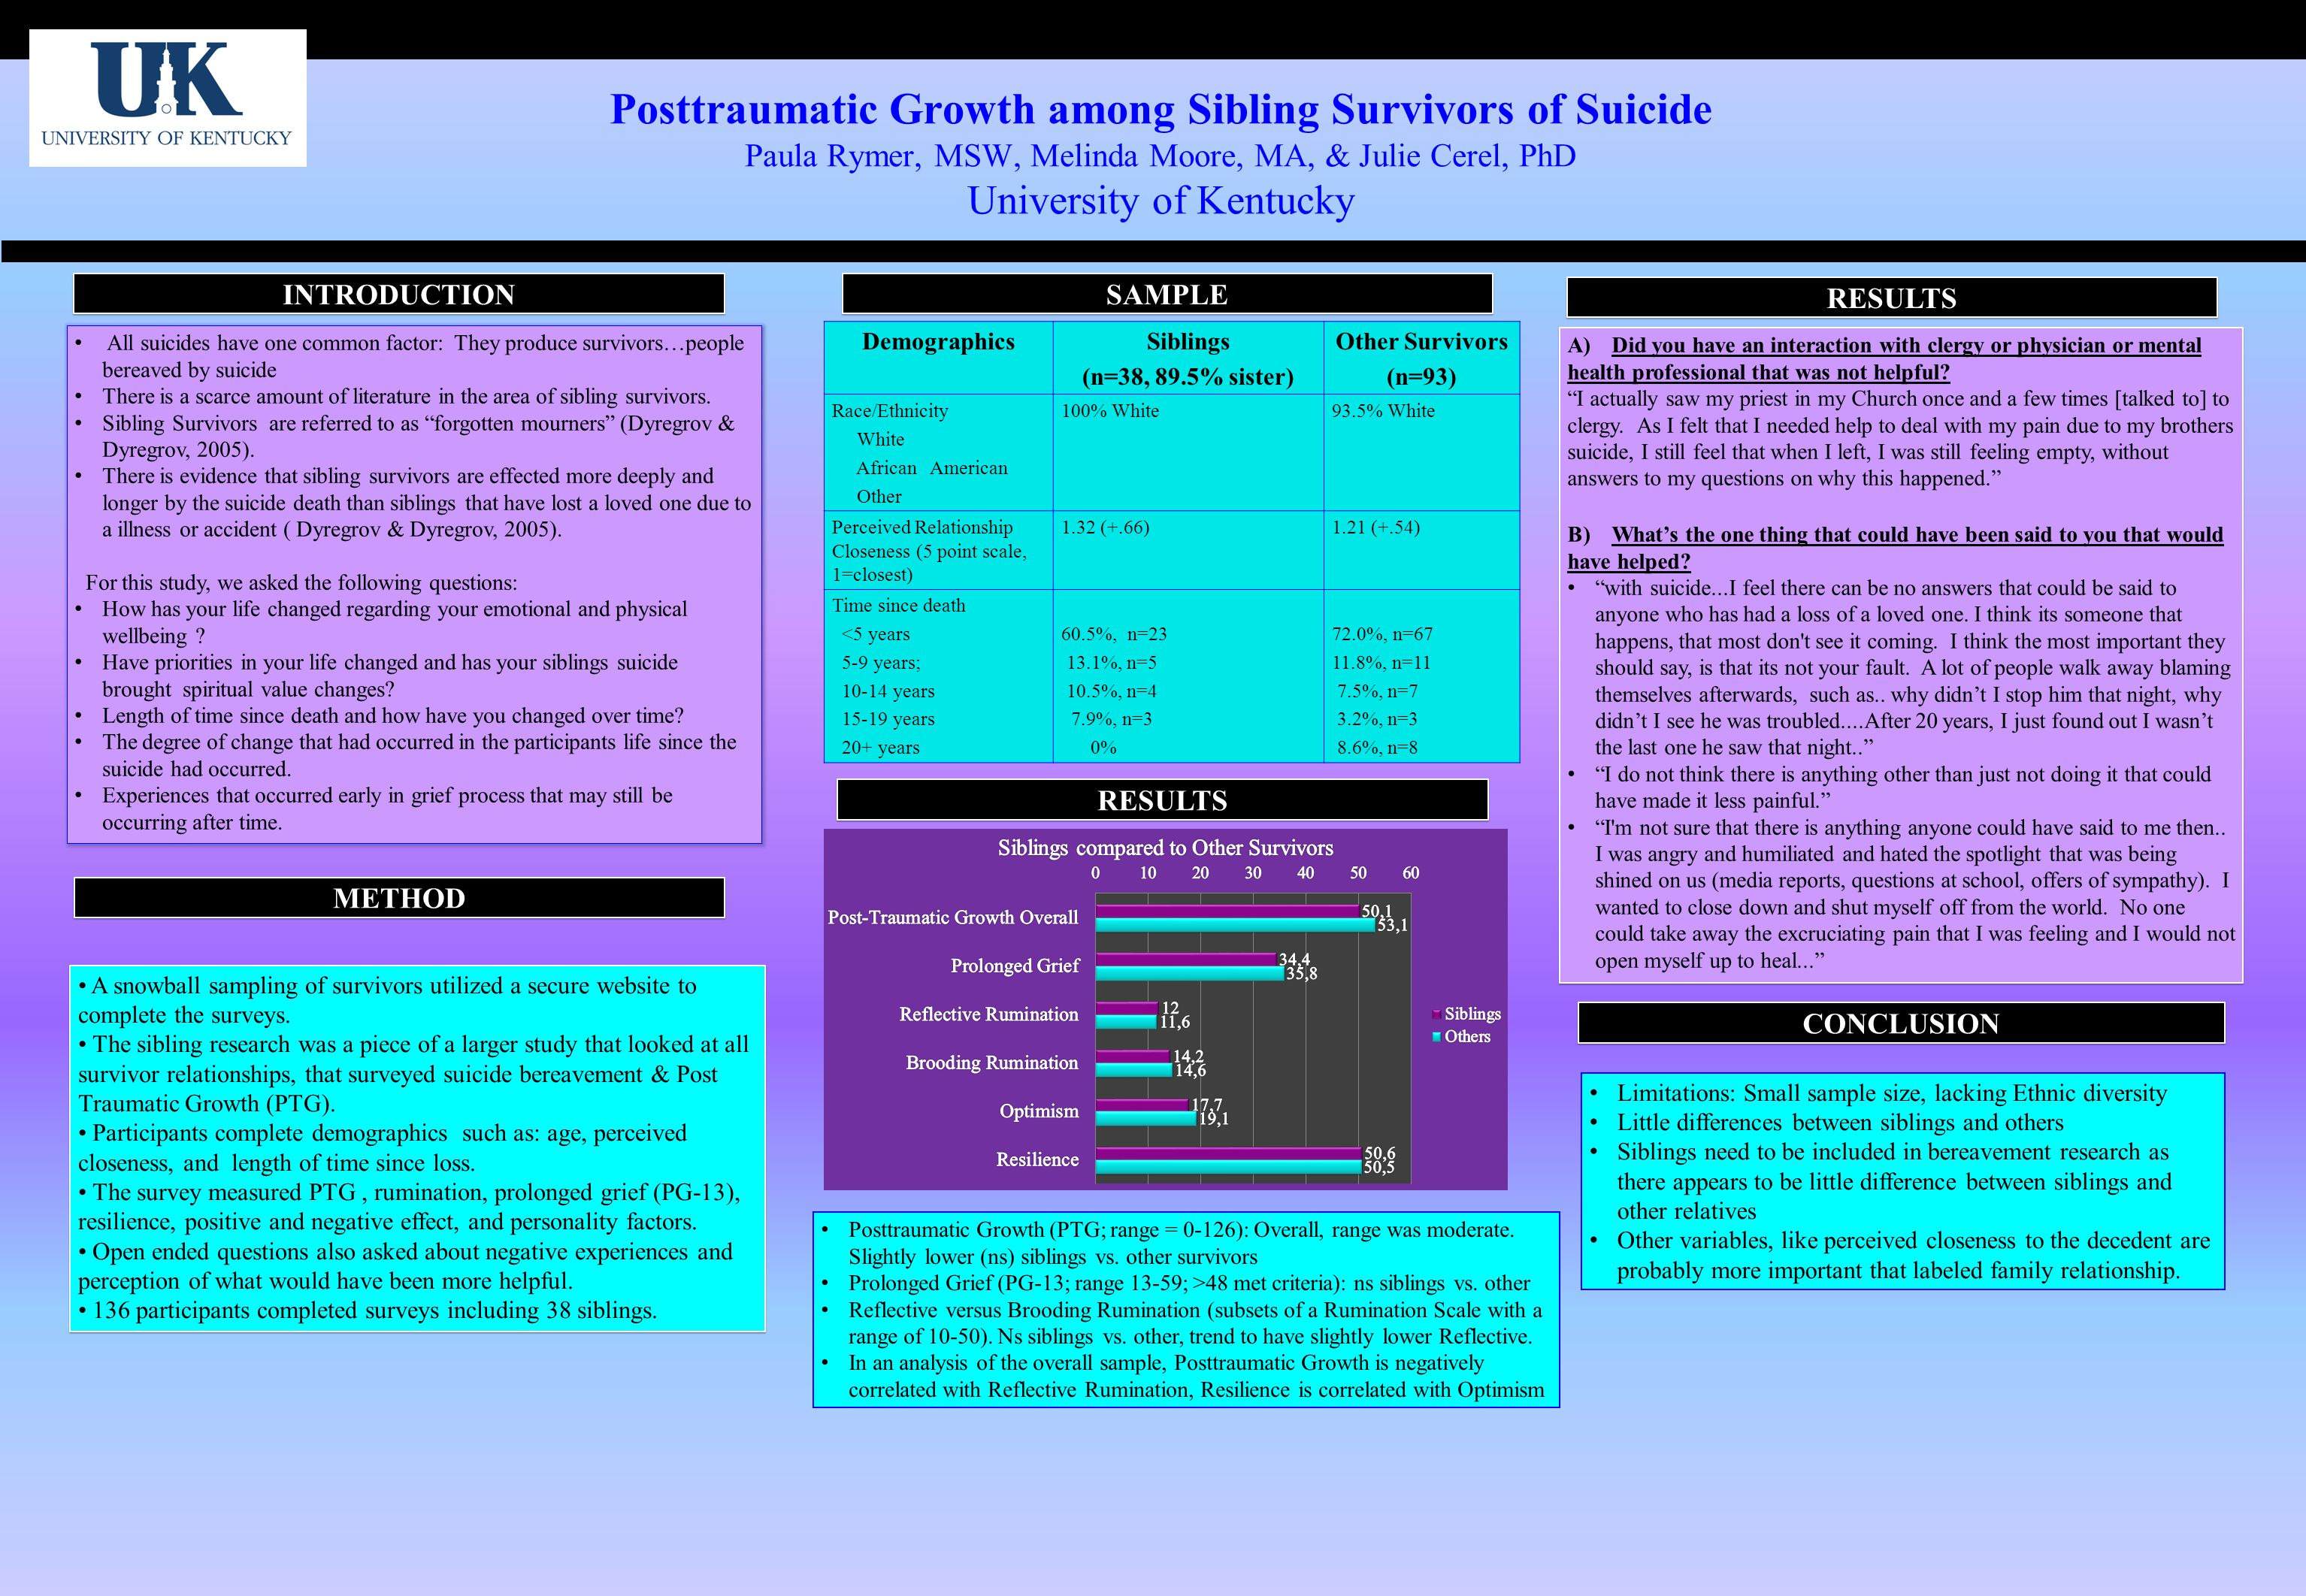 Posttraumatic Growth among Sibling Survivors of Suicide Paula Rymer, MSW, Melinda Moore, MA, & Julie Cerel, PhD University of Kentucky INTRODUCTION A snowball sampling of survivors utilized a secure website to complete the surveys.